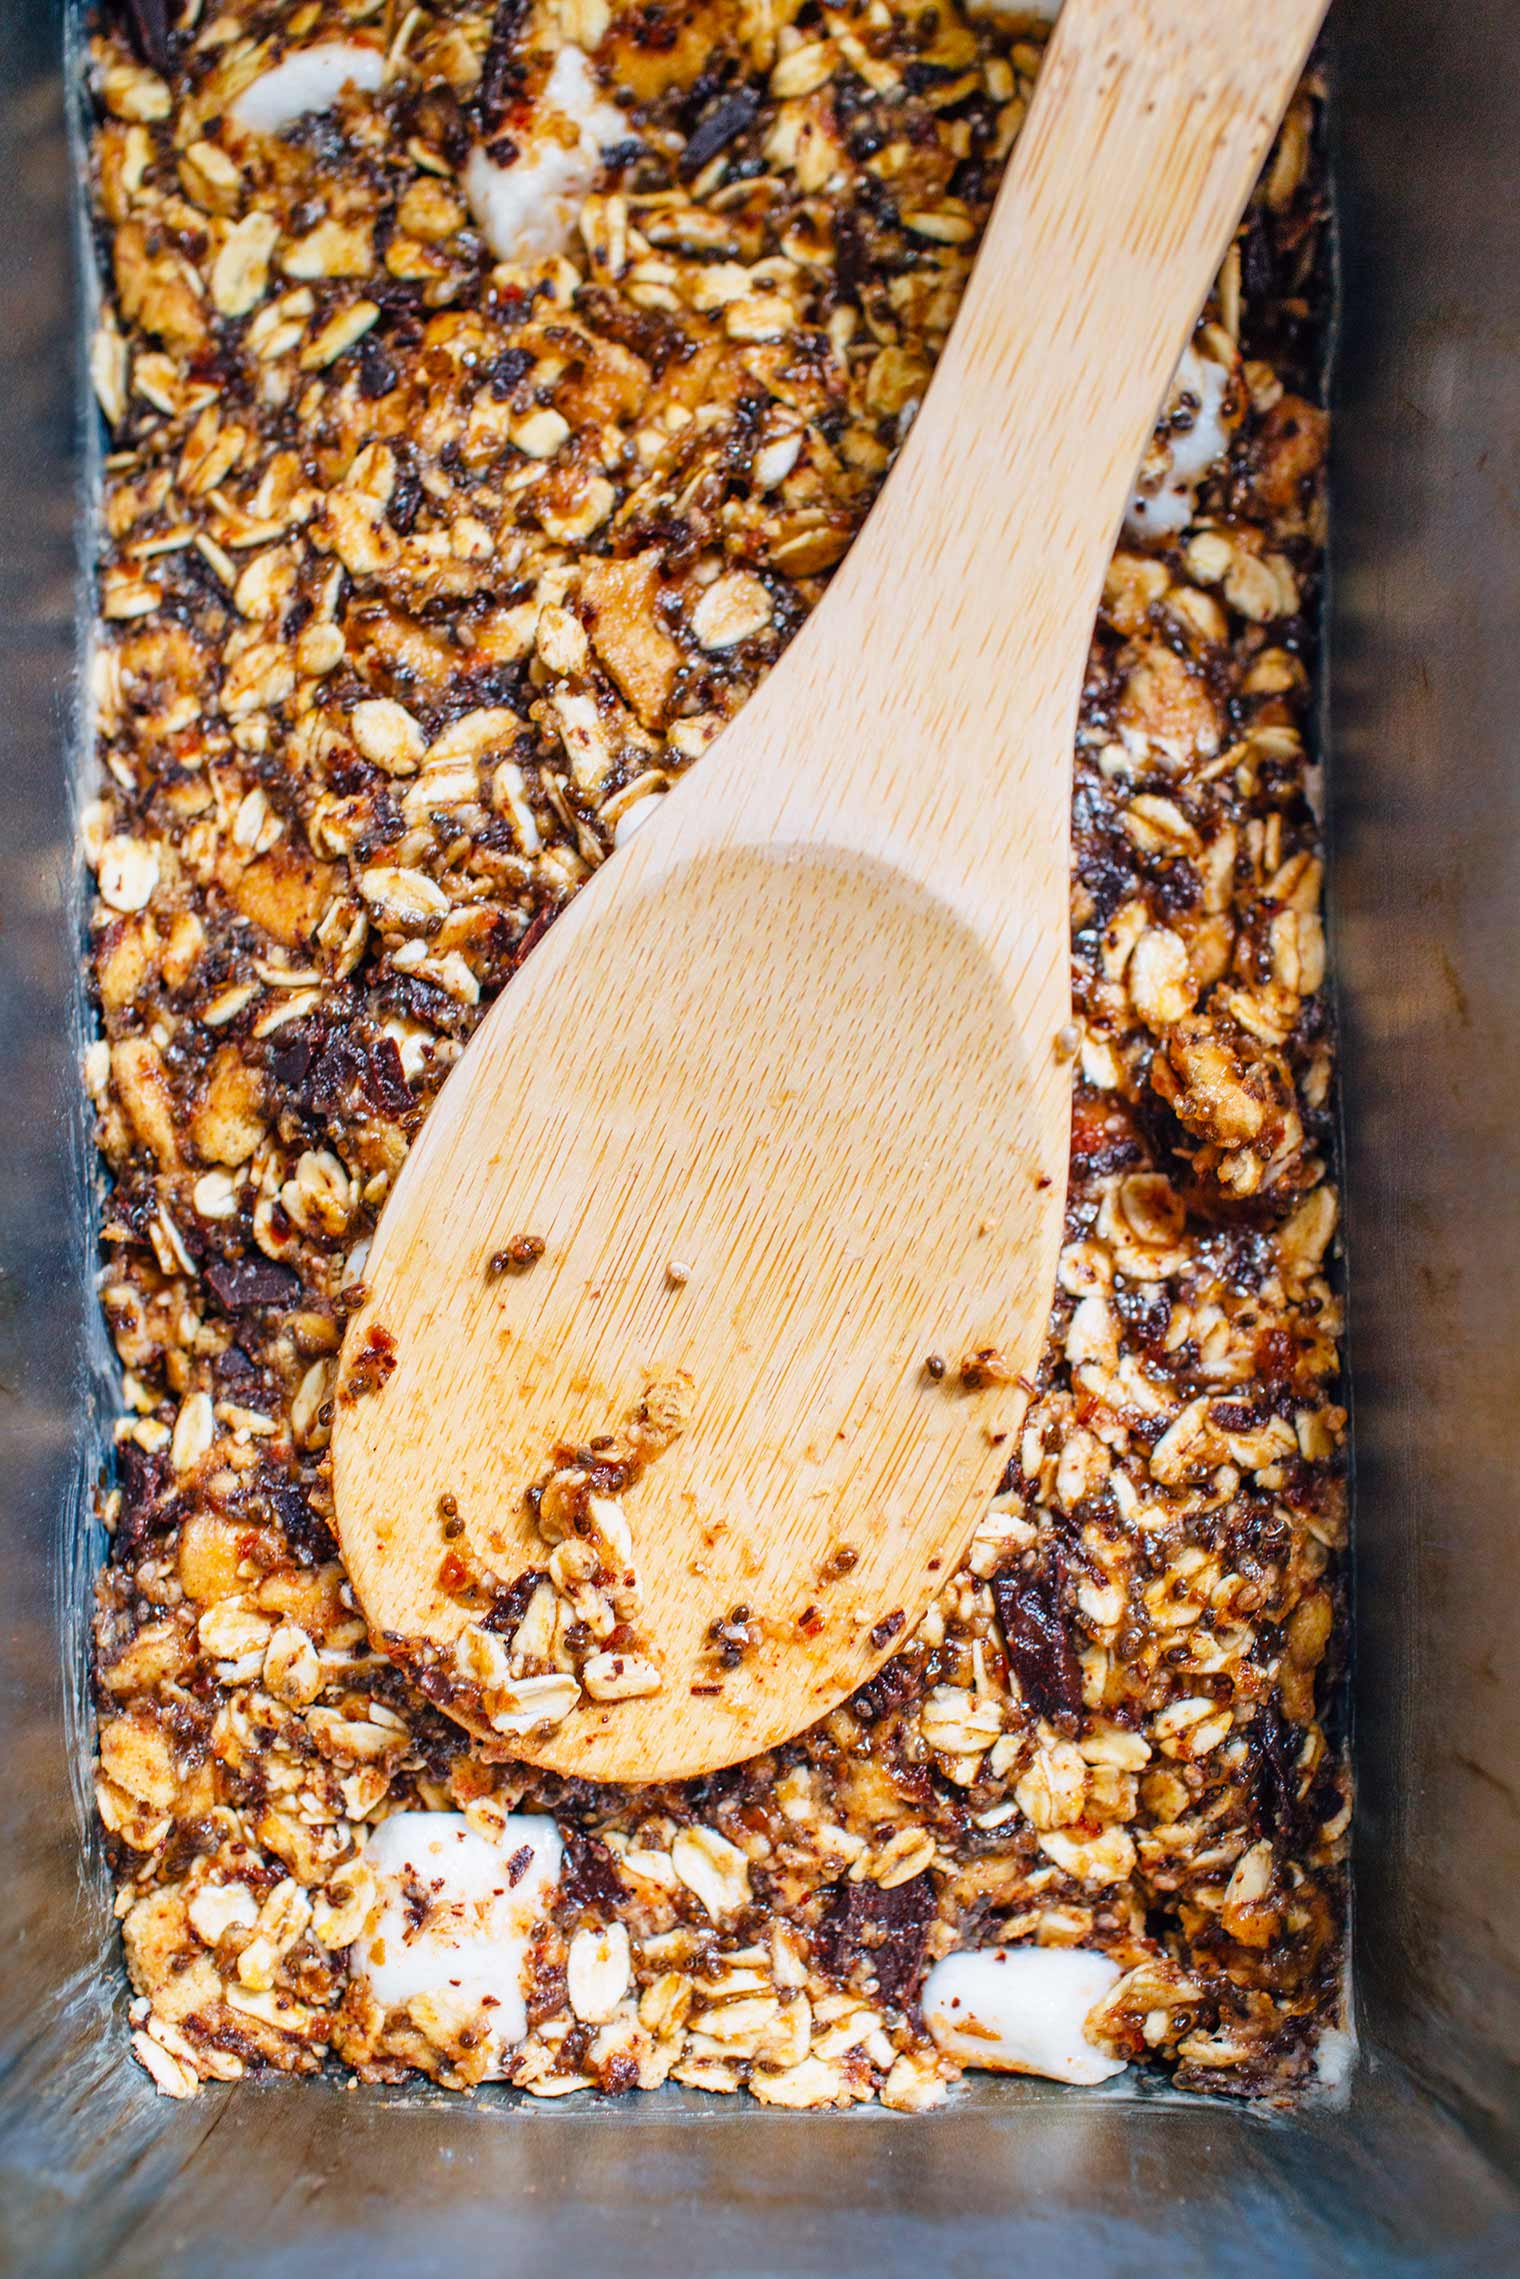 These chewy vegan s'mores granola bars are a delicious camping-inspired snack!